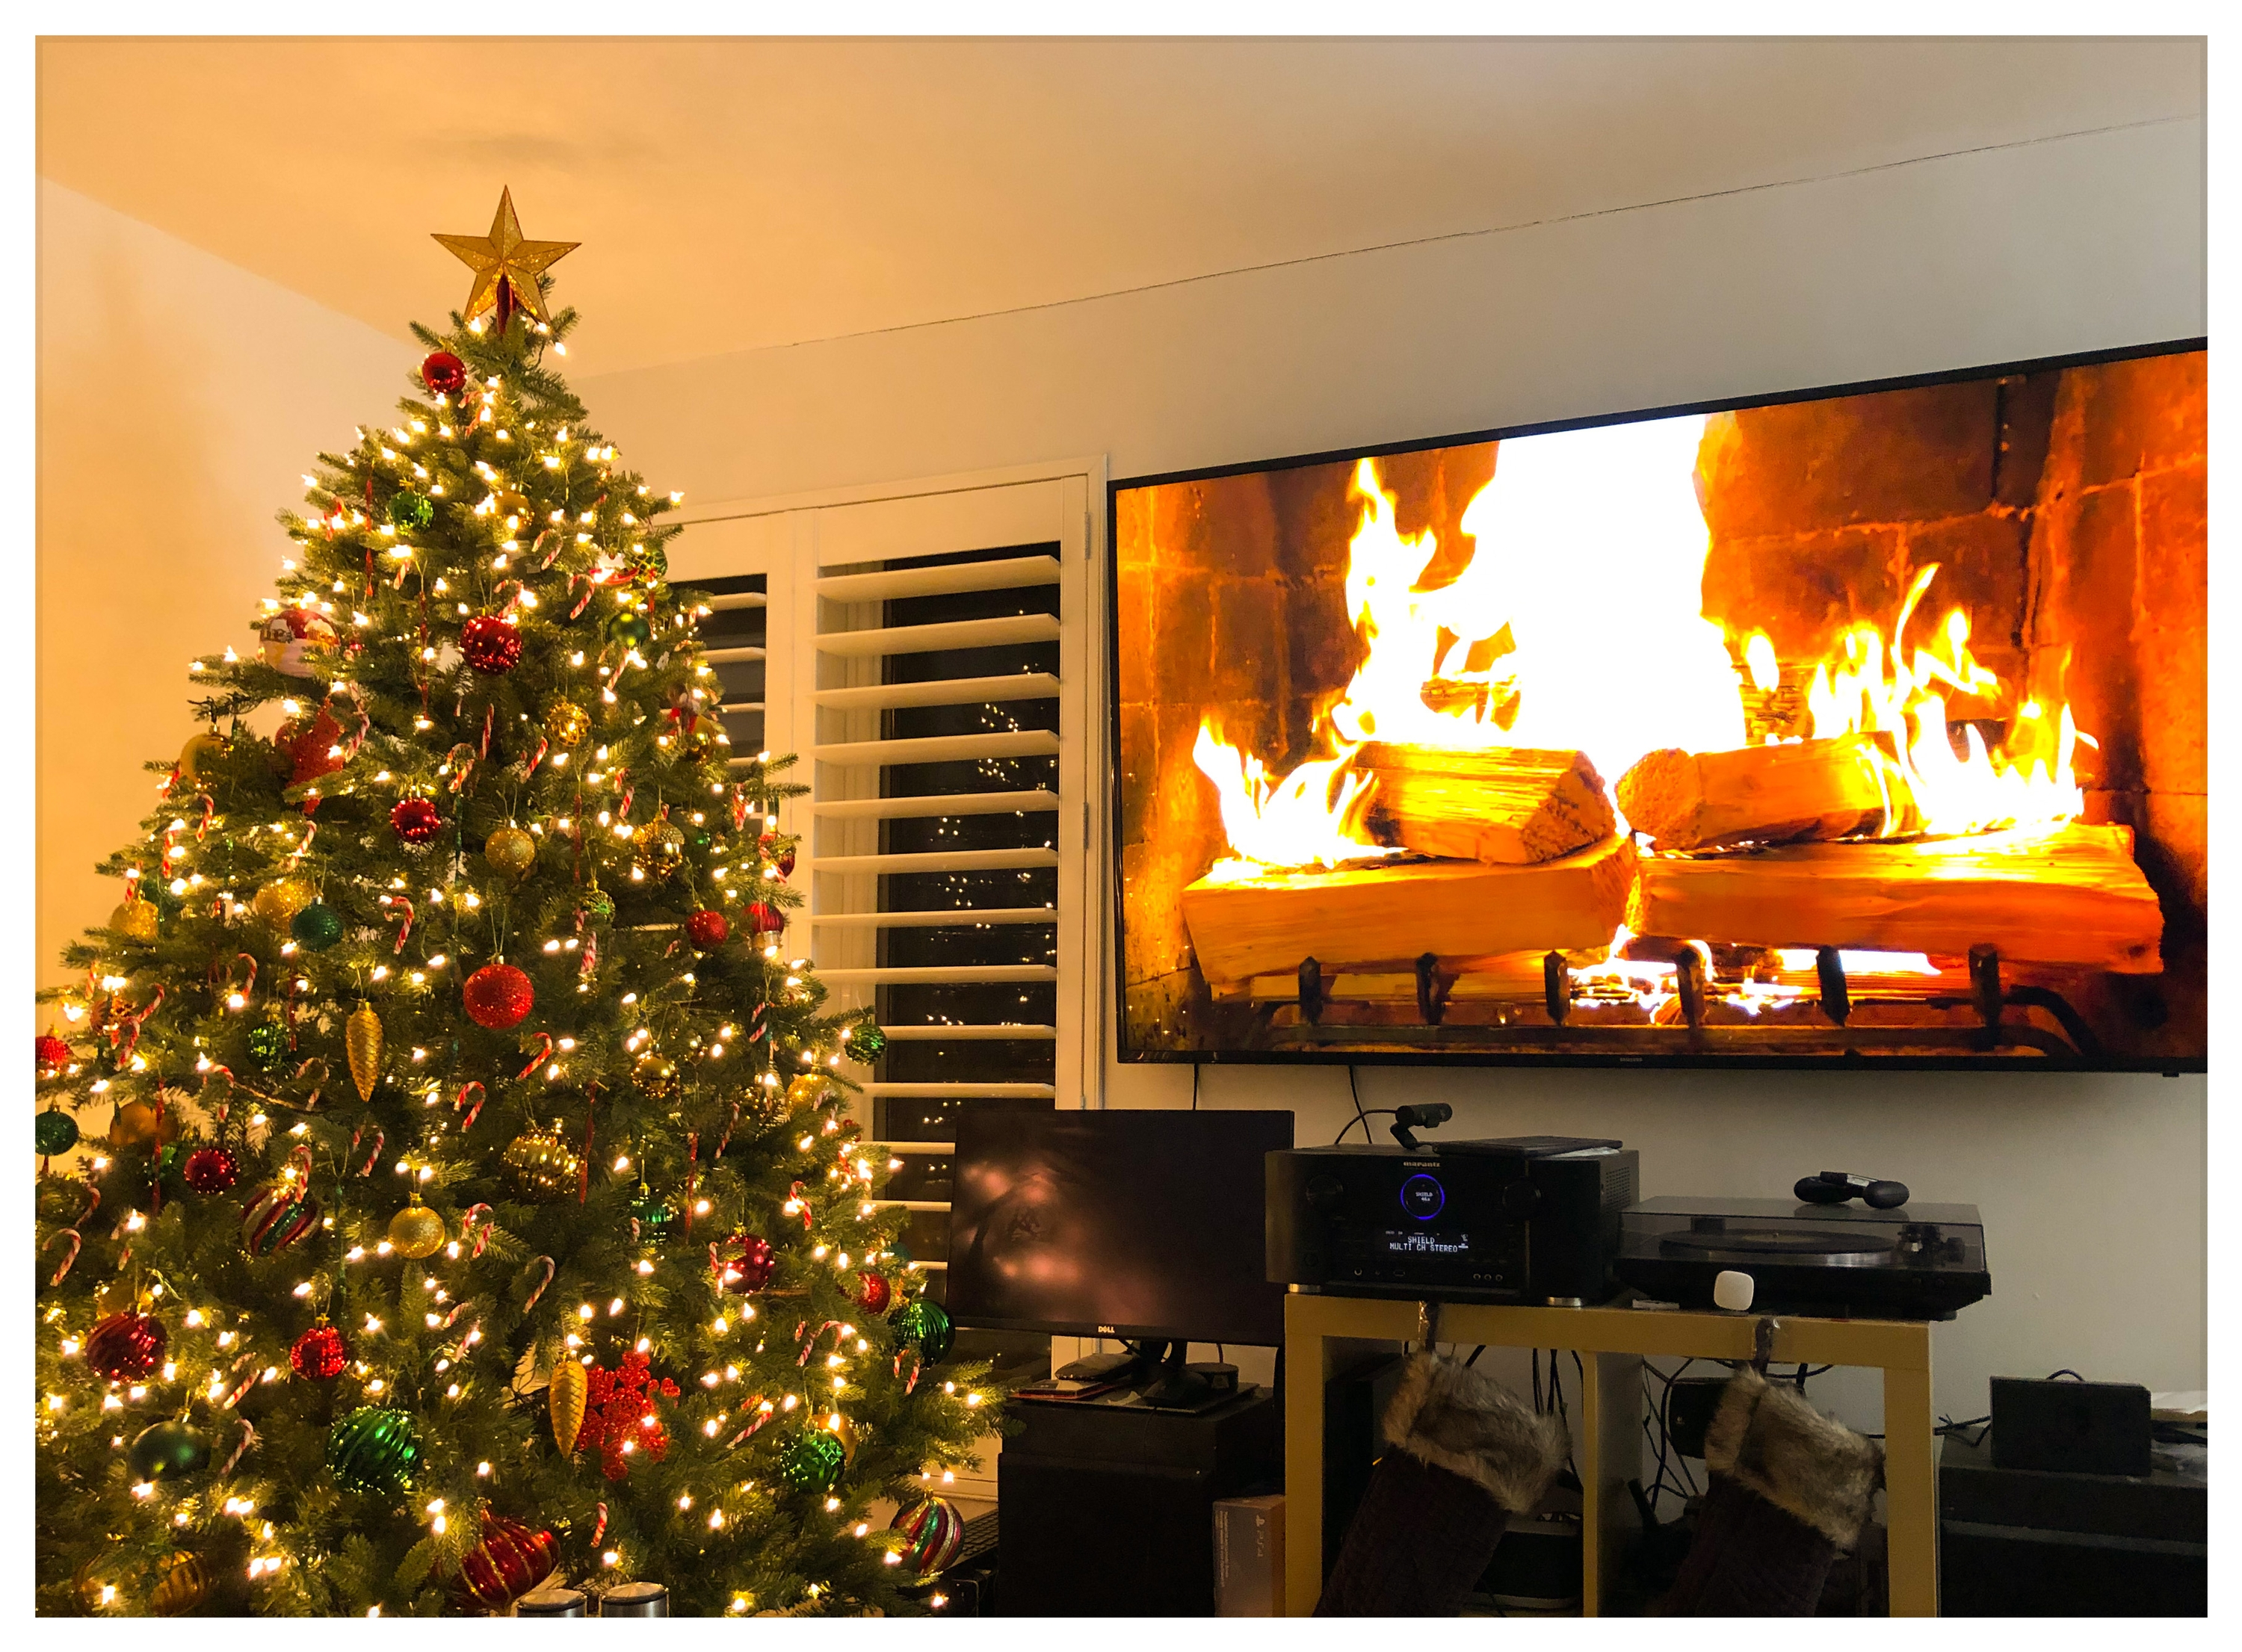 fully decorated and a 75 inch fire place